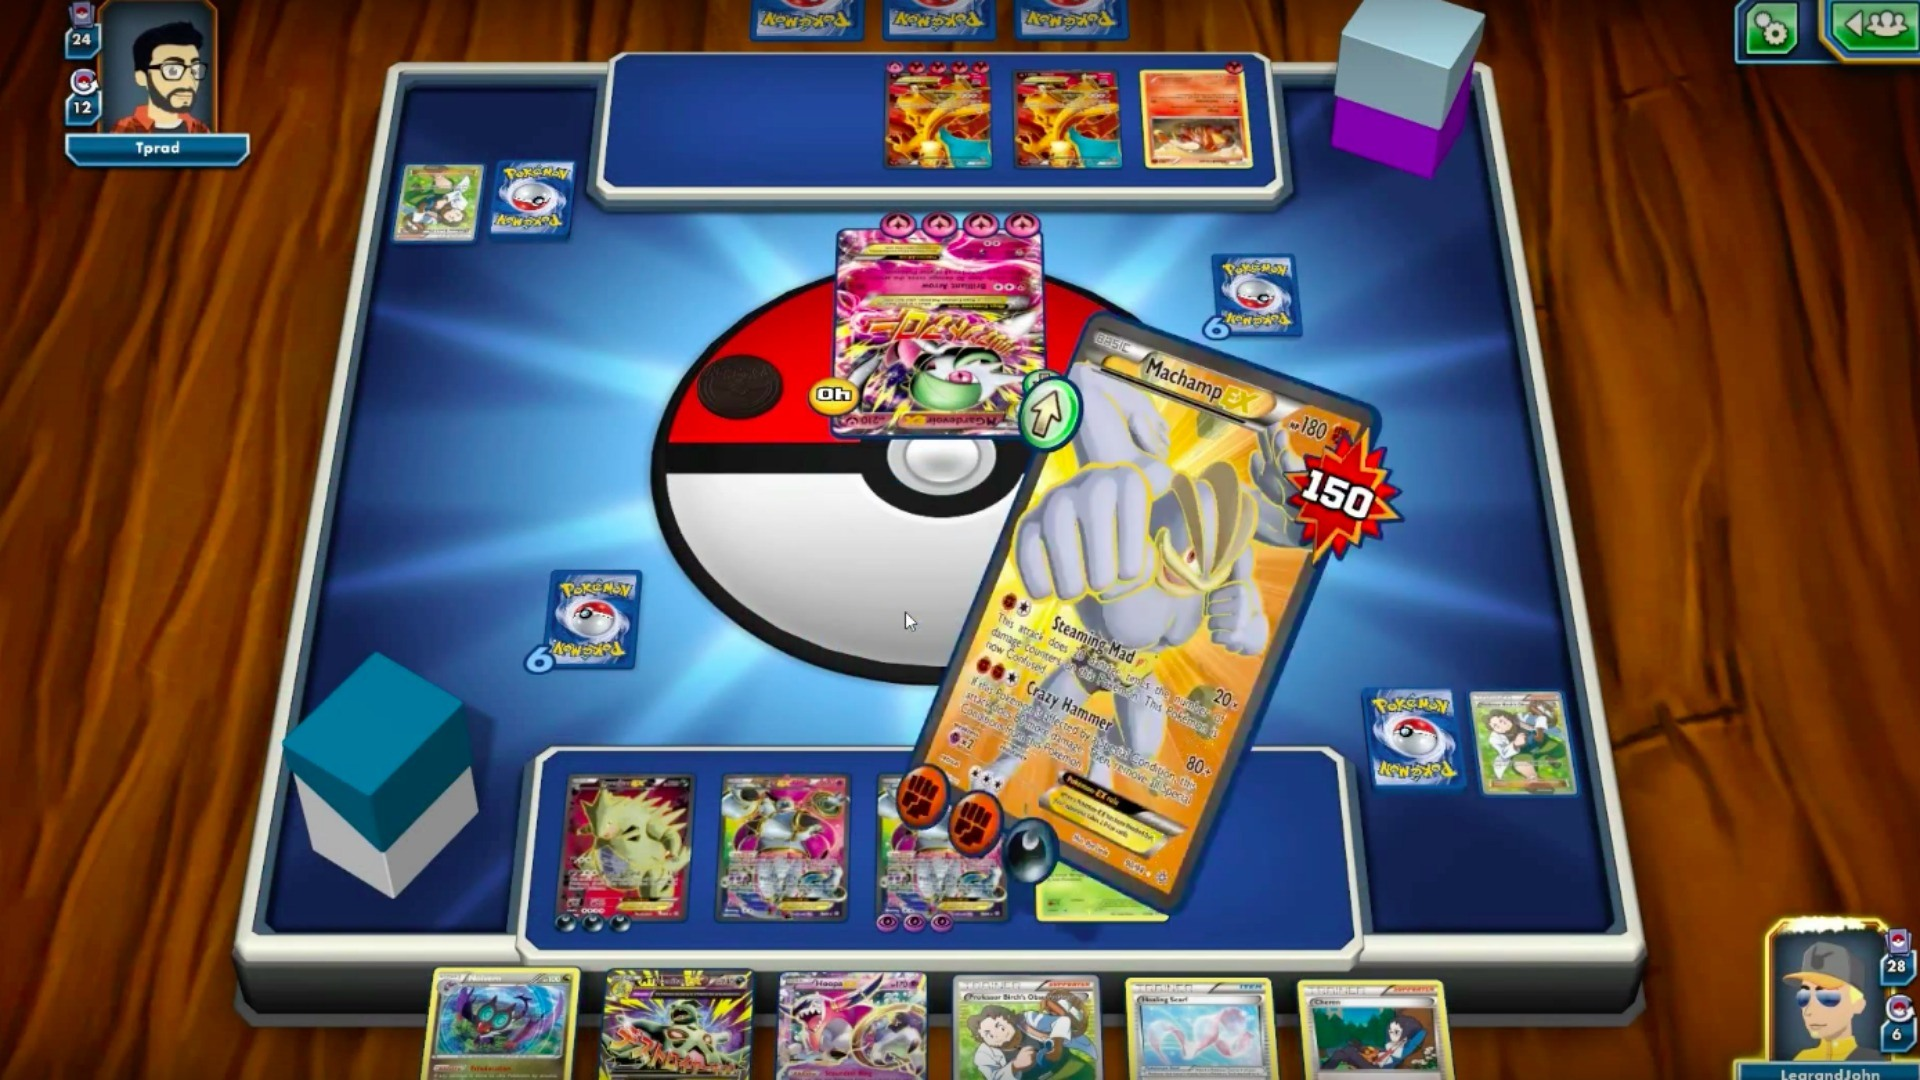 PTCGO hack android July 2019